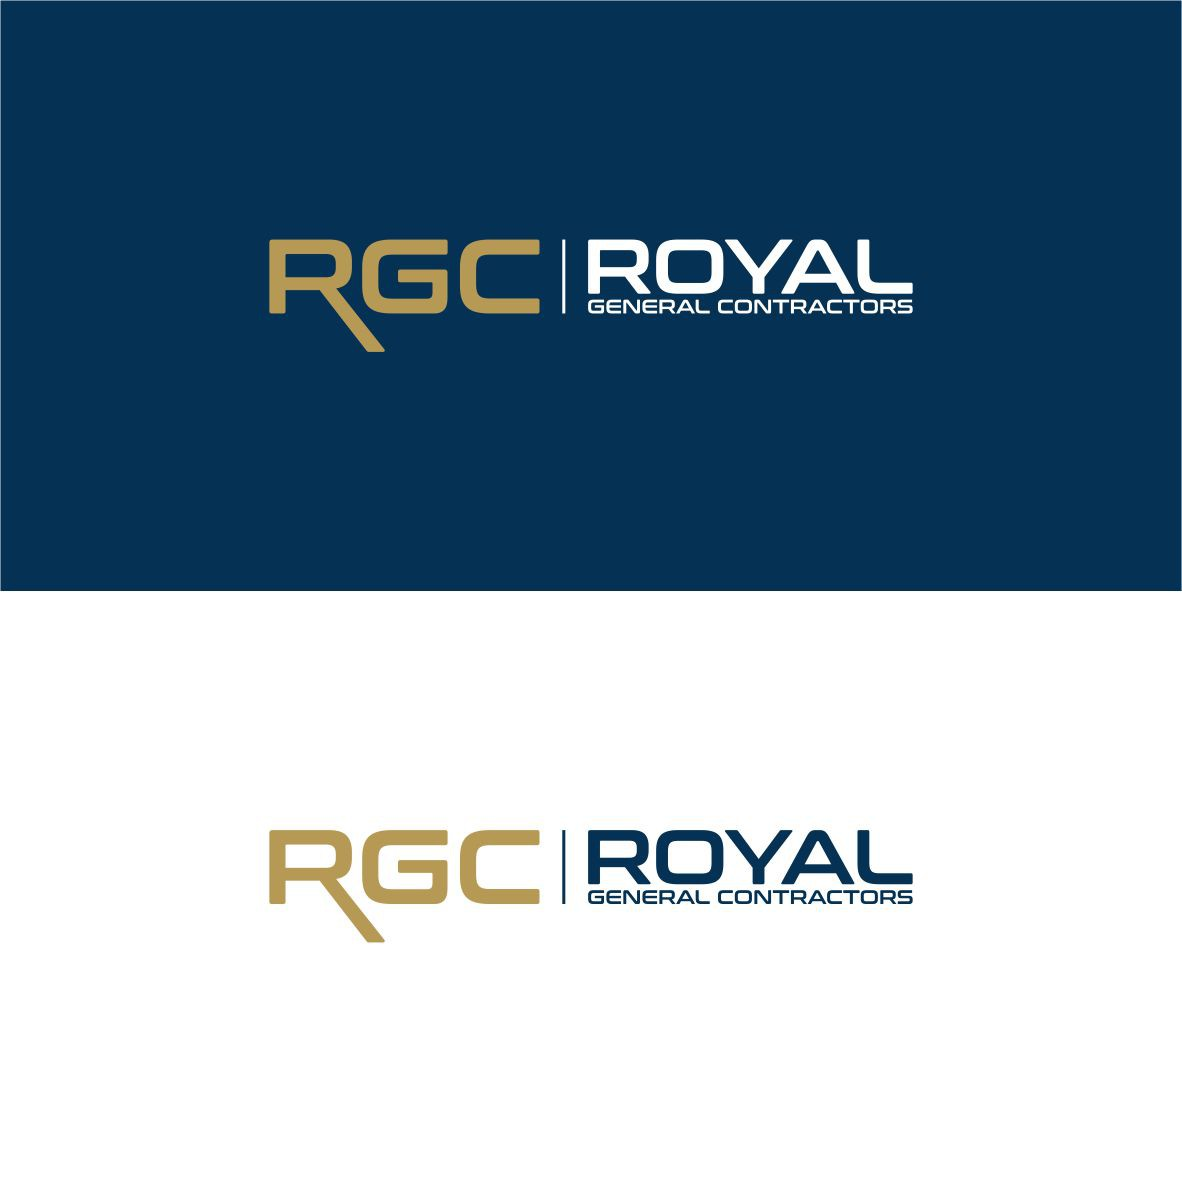 CONSTRUCTION COMPANY REBRAND - Royal General Contractors